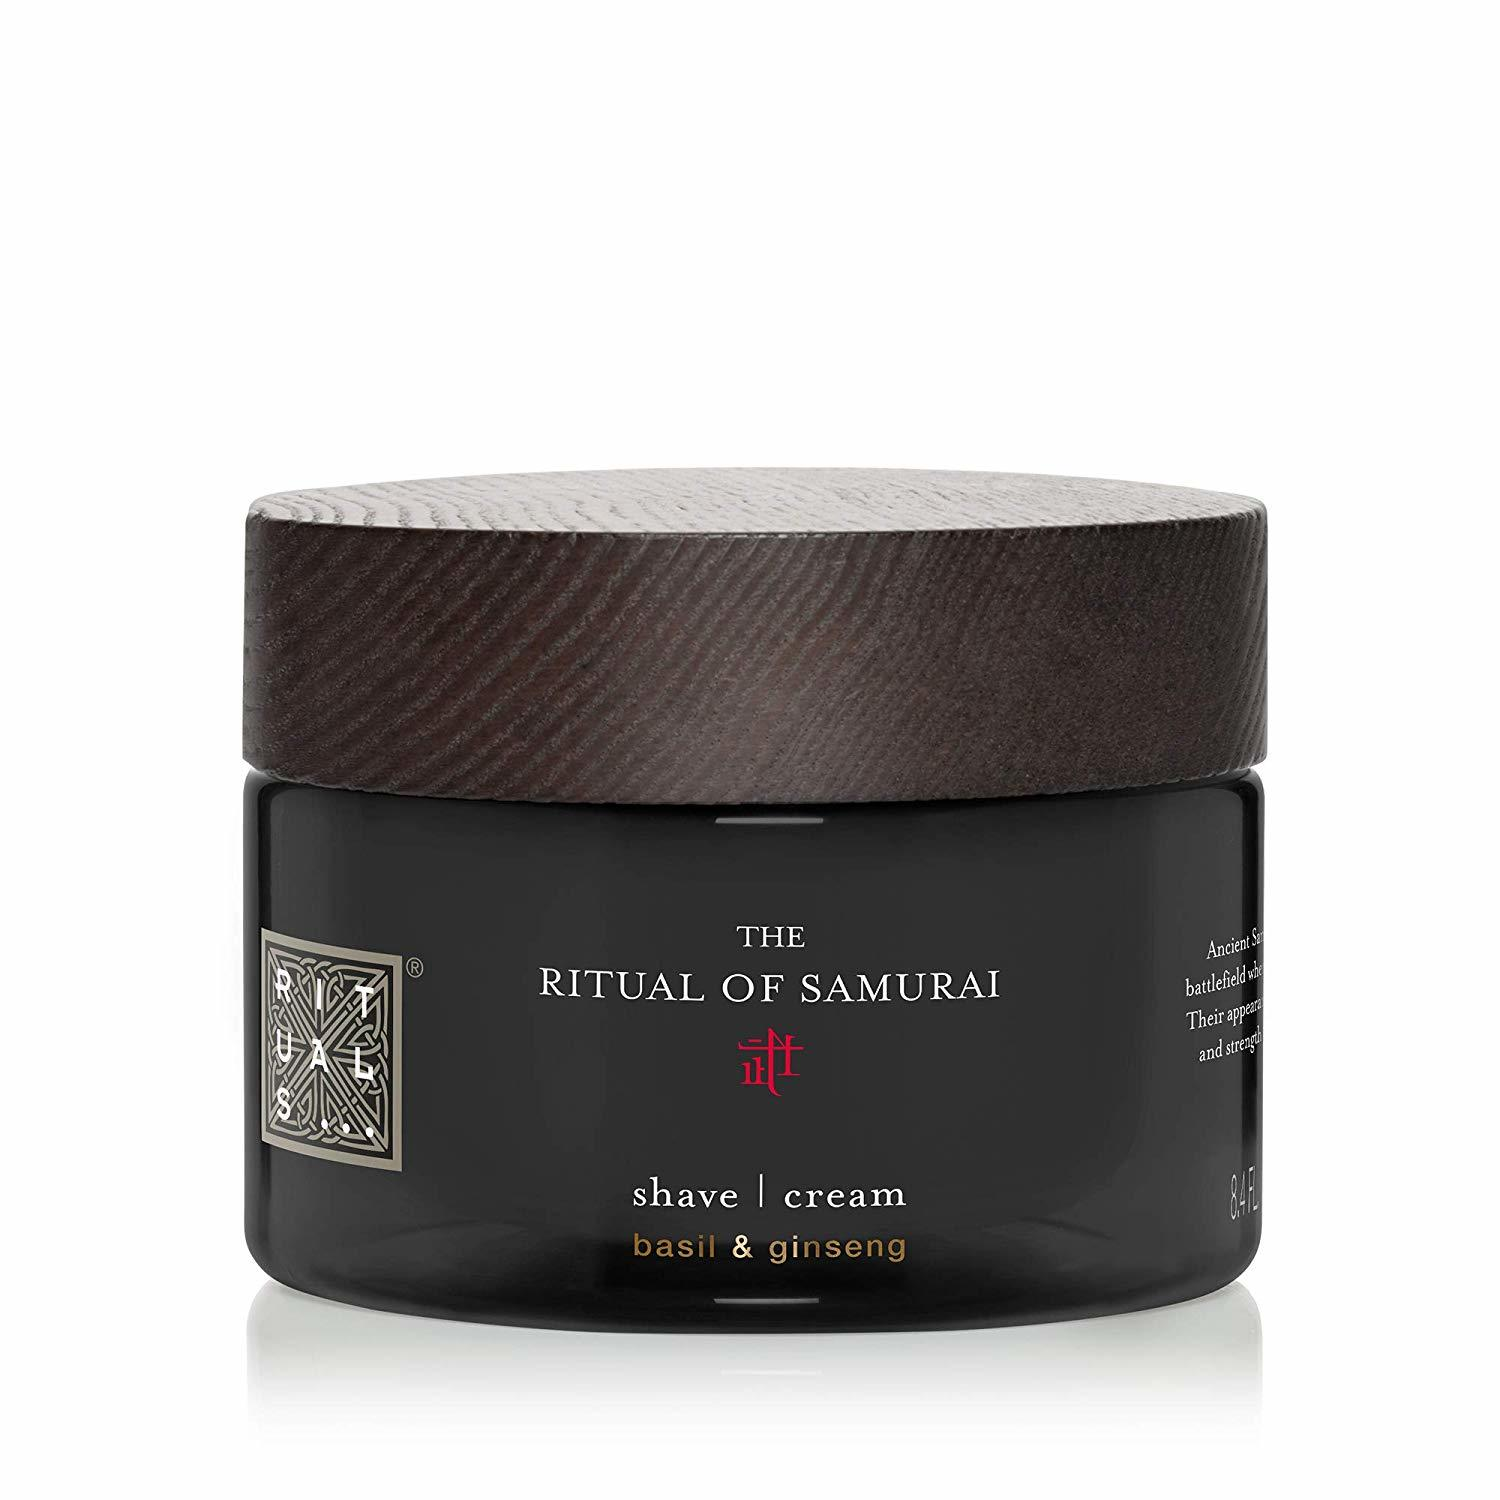 Rituals of Samurai shaving cream